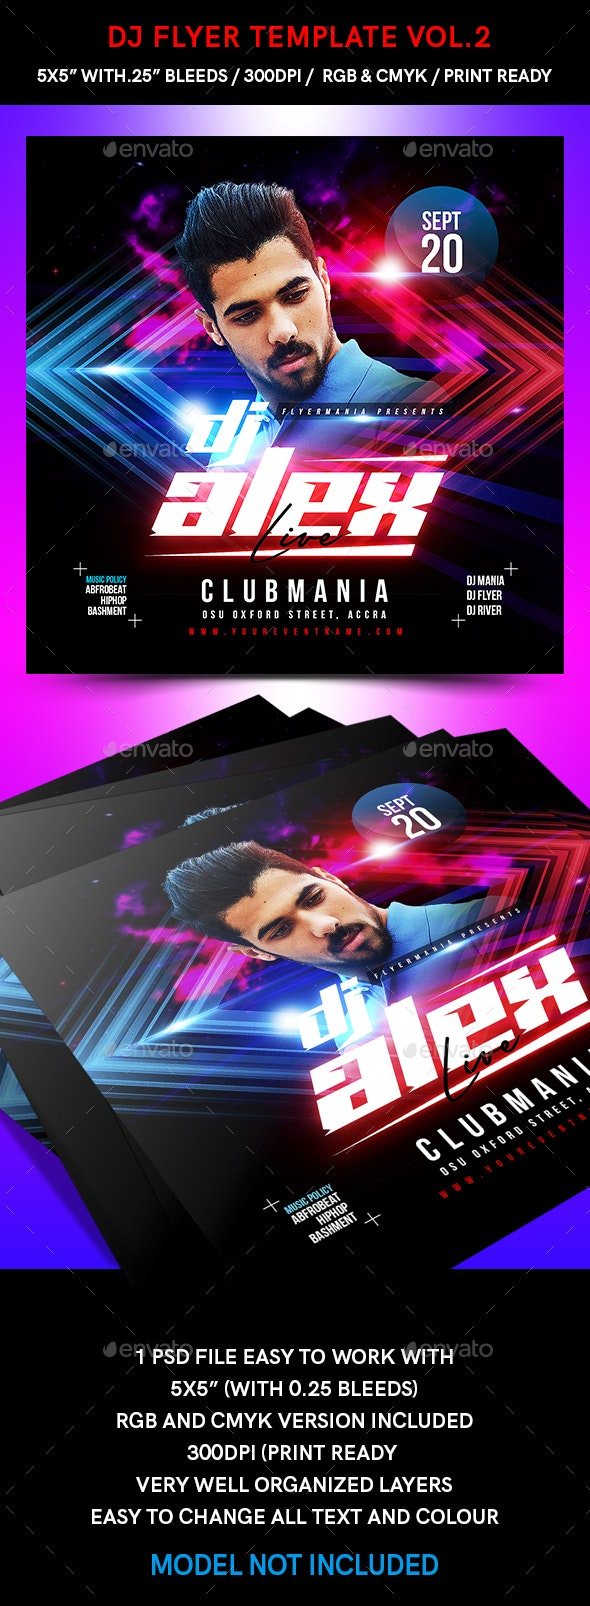 DJ Flyer Template Vol.2 - Flyers Print Templates